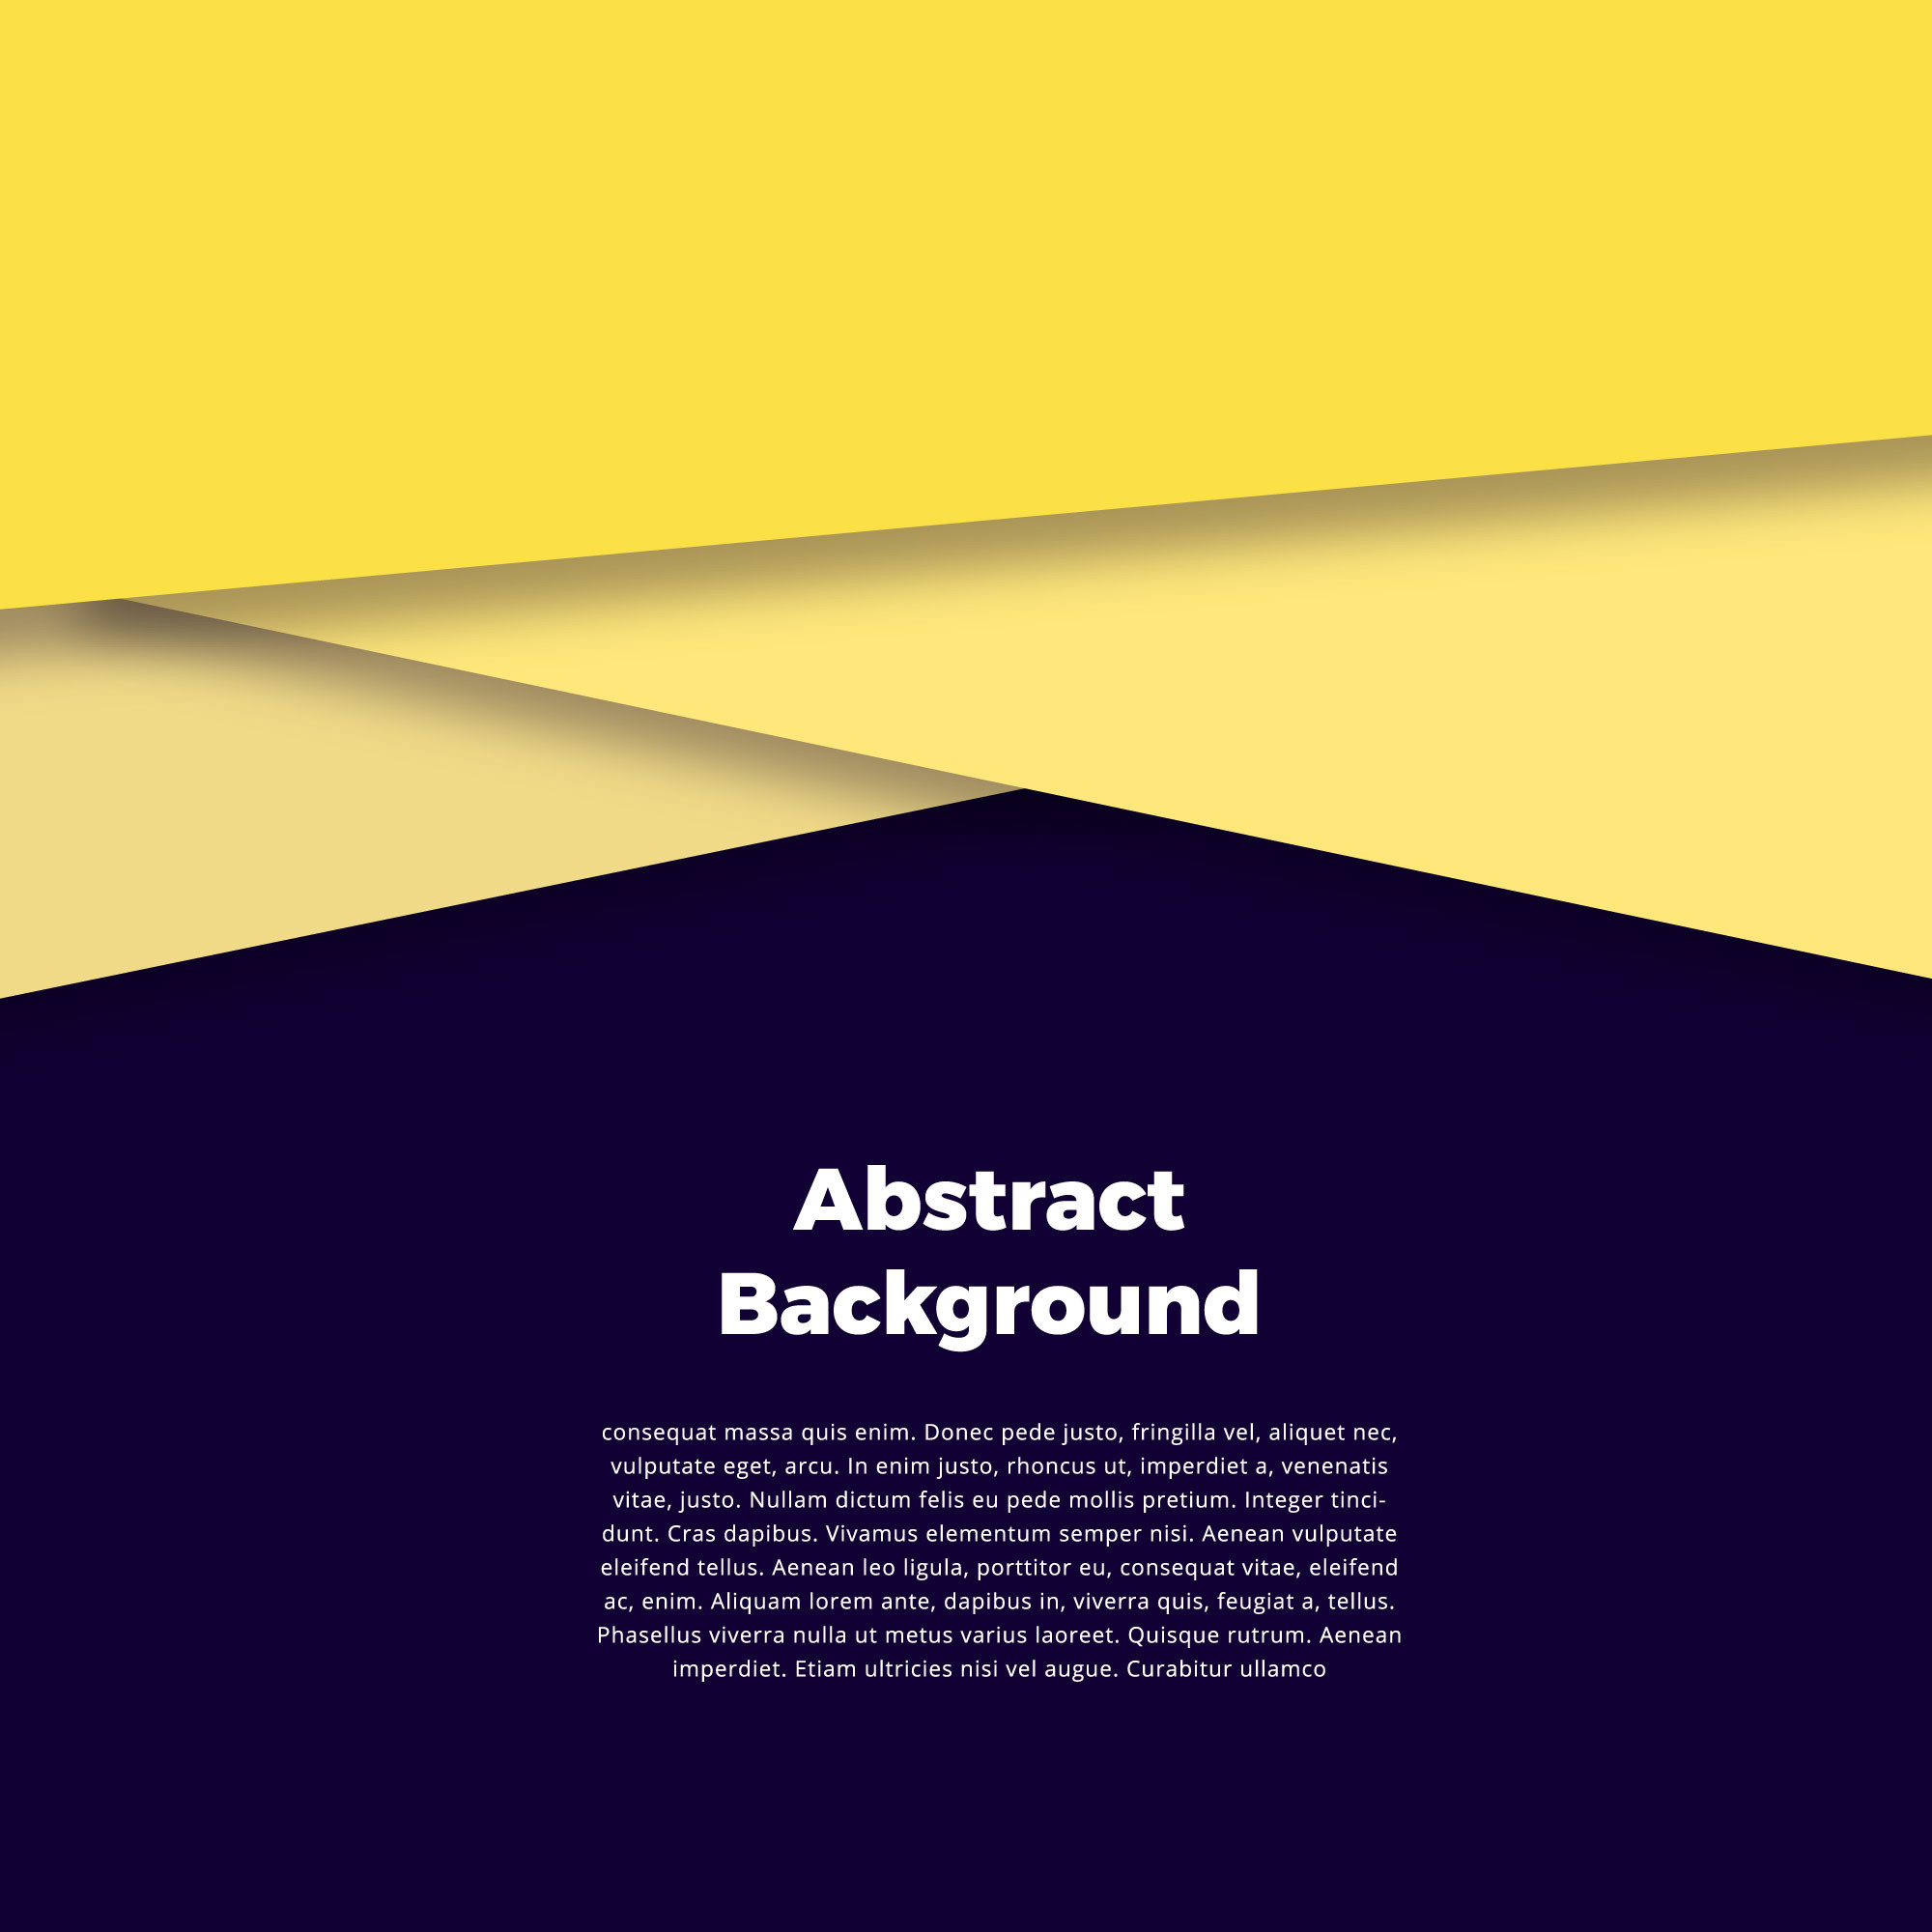 Abstract Background in Paper Style